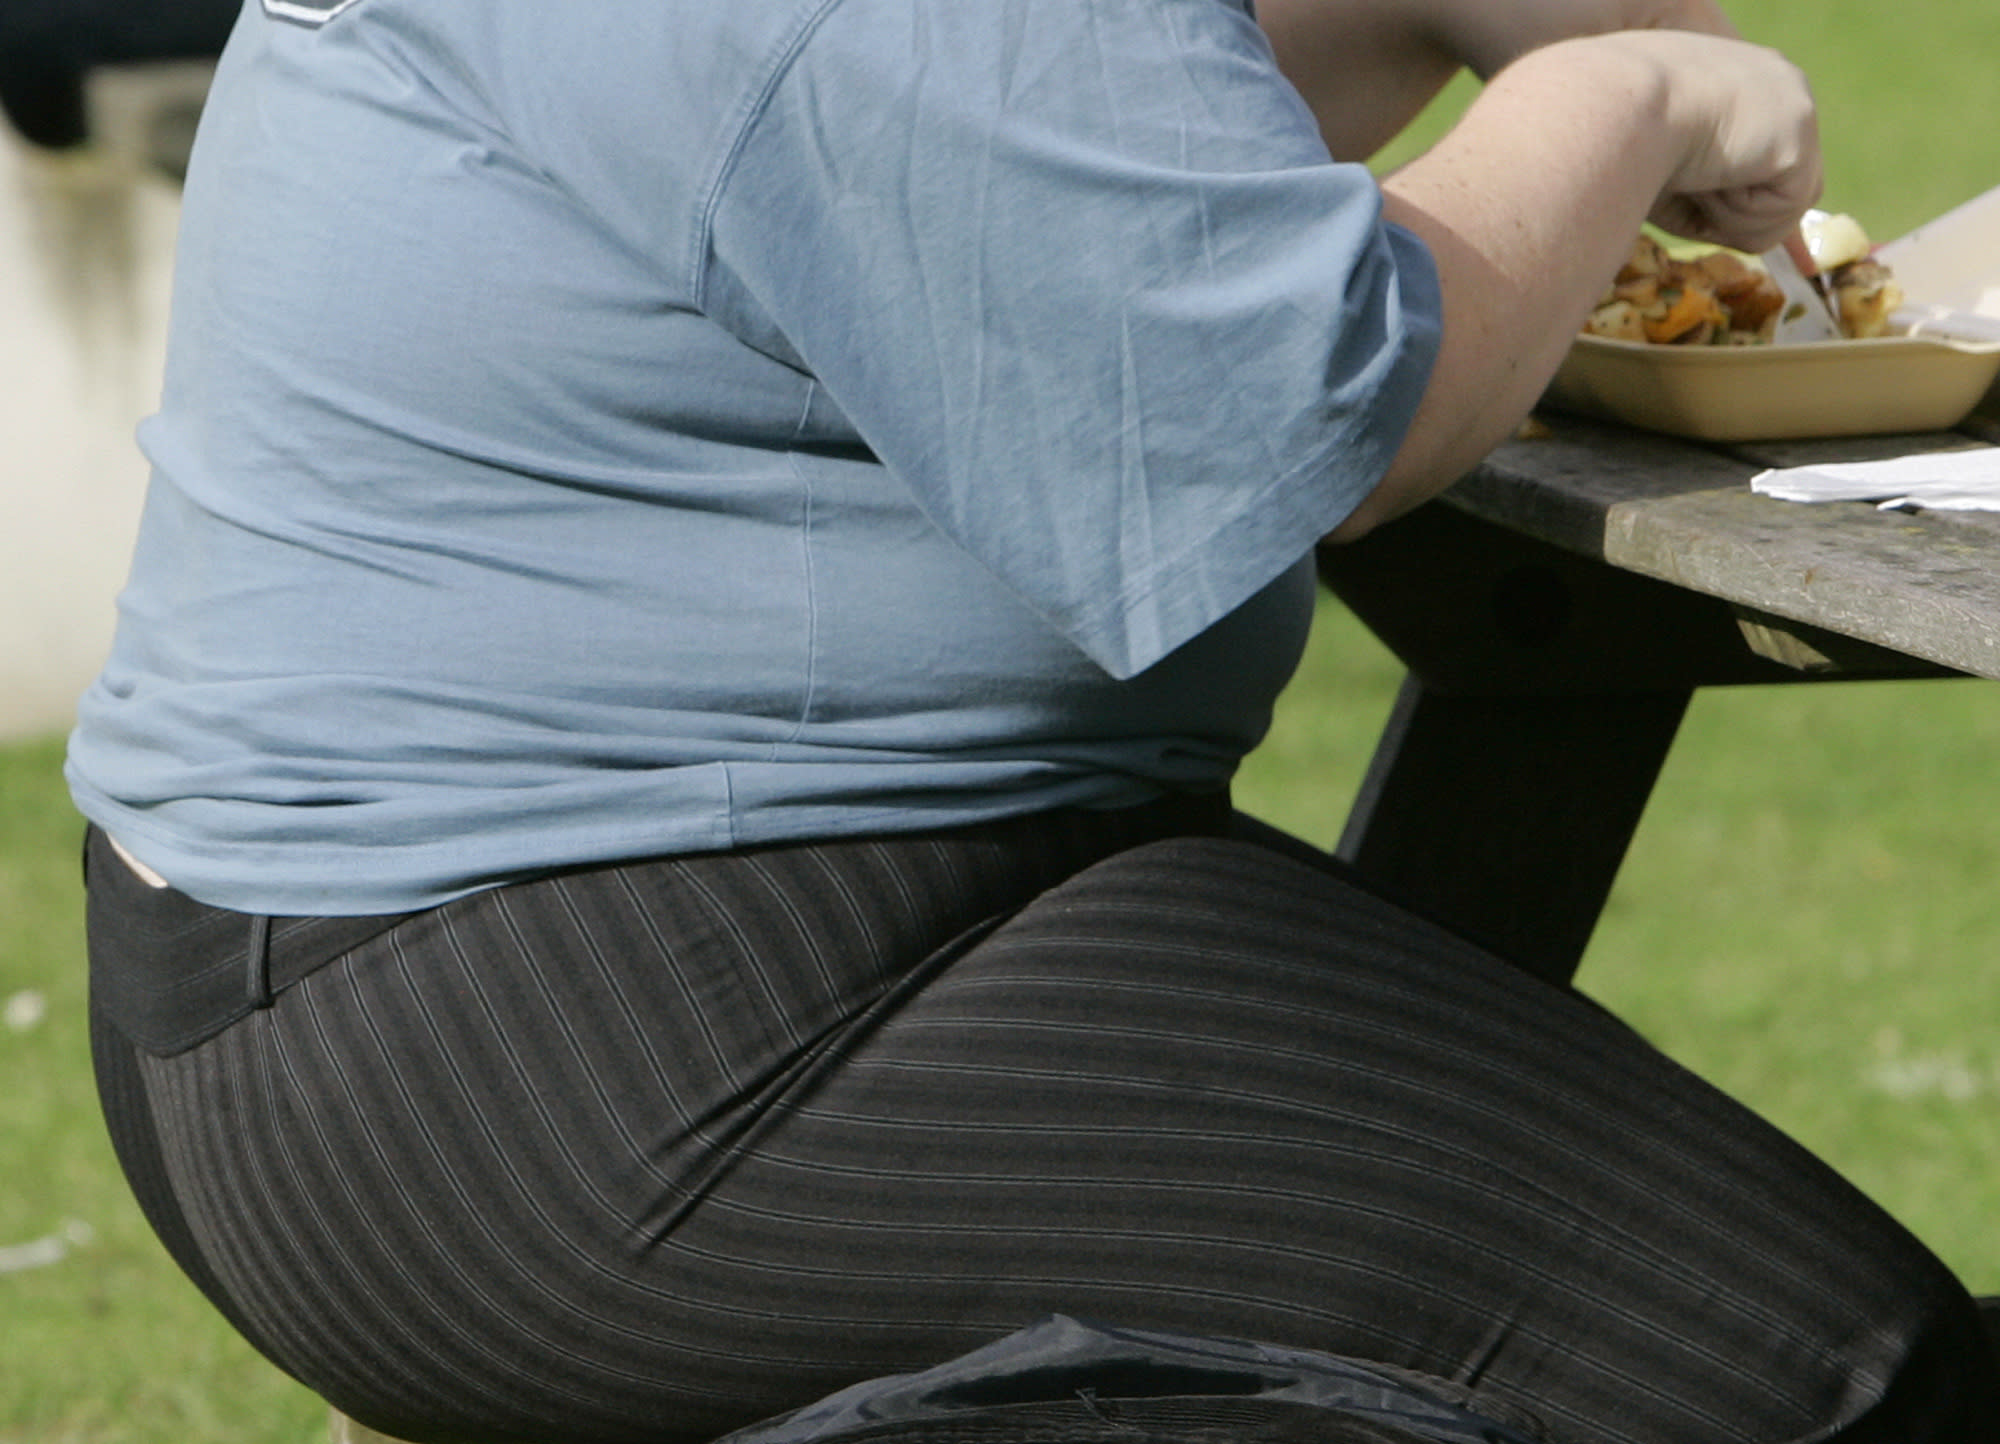 European court rules obesity can be a disability